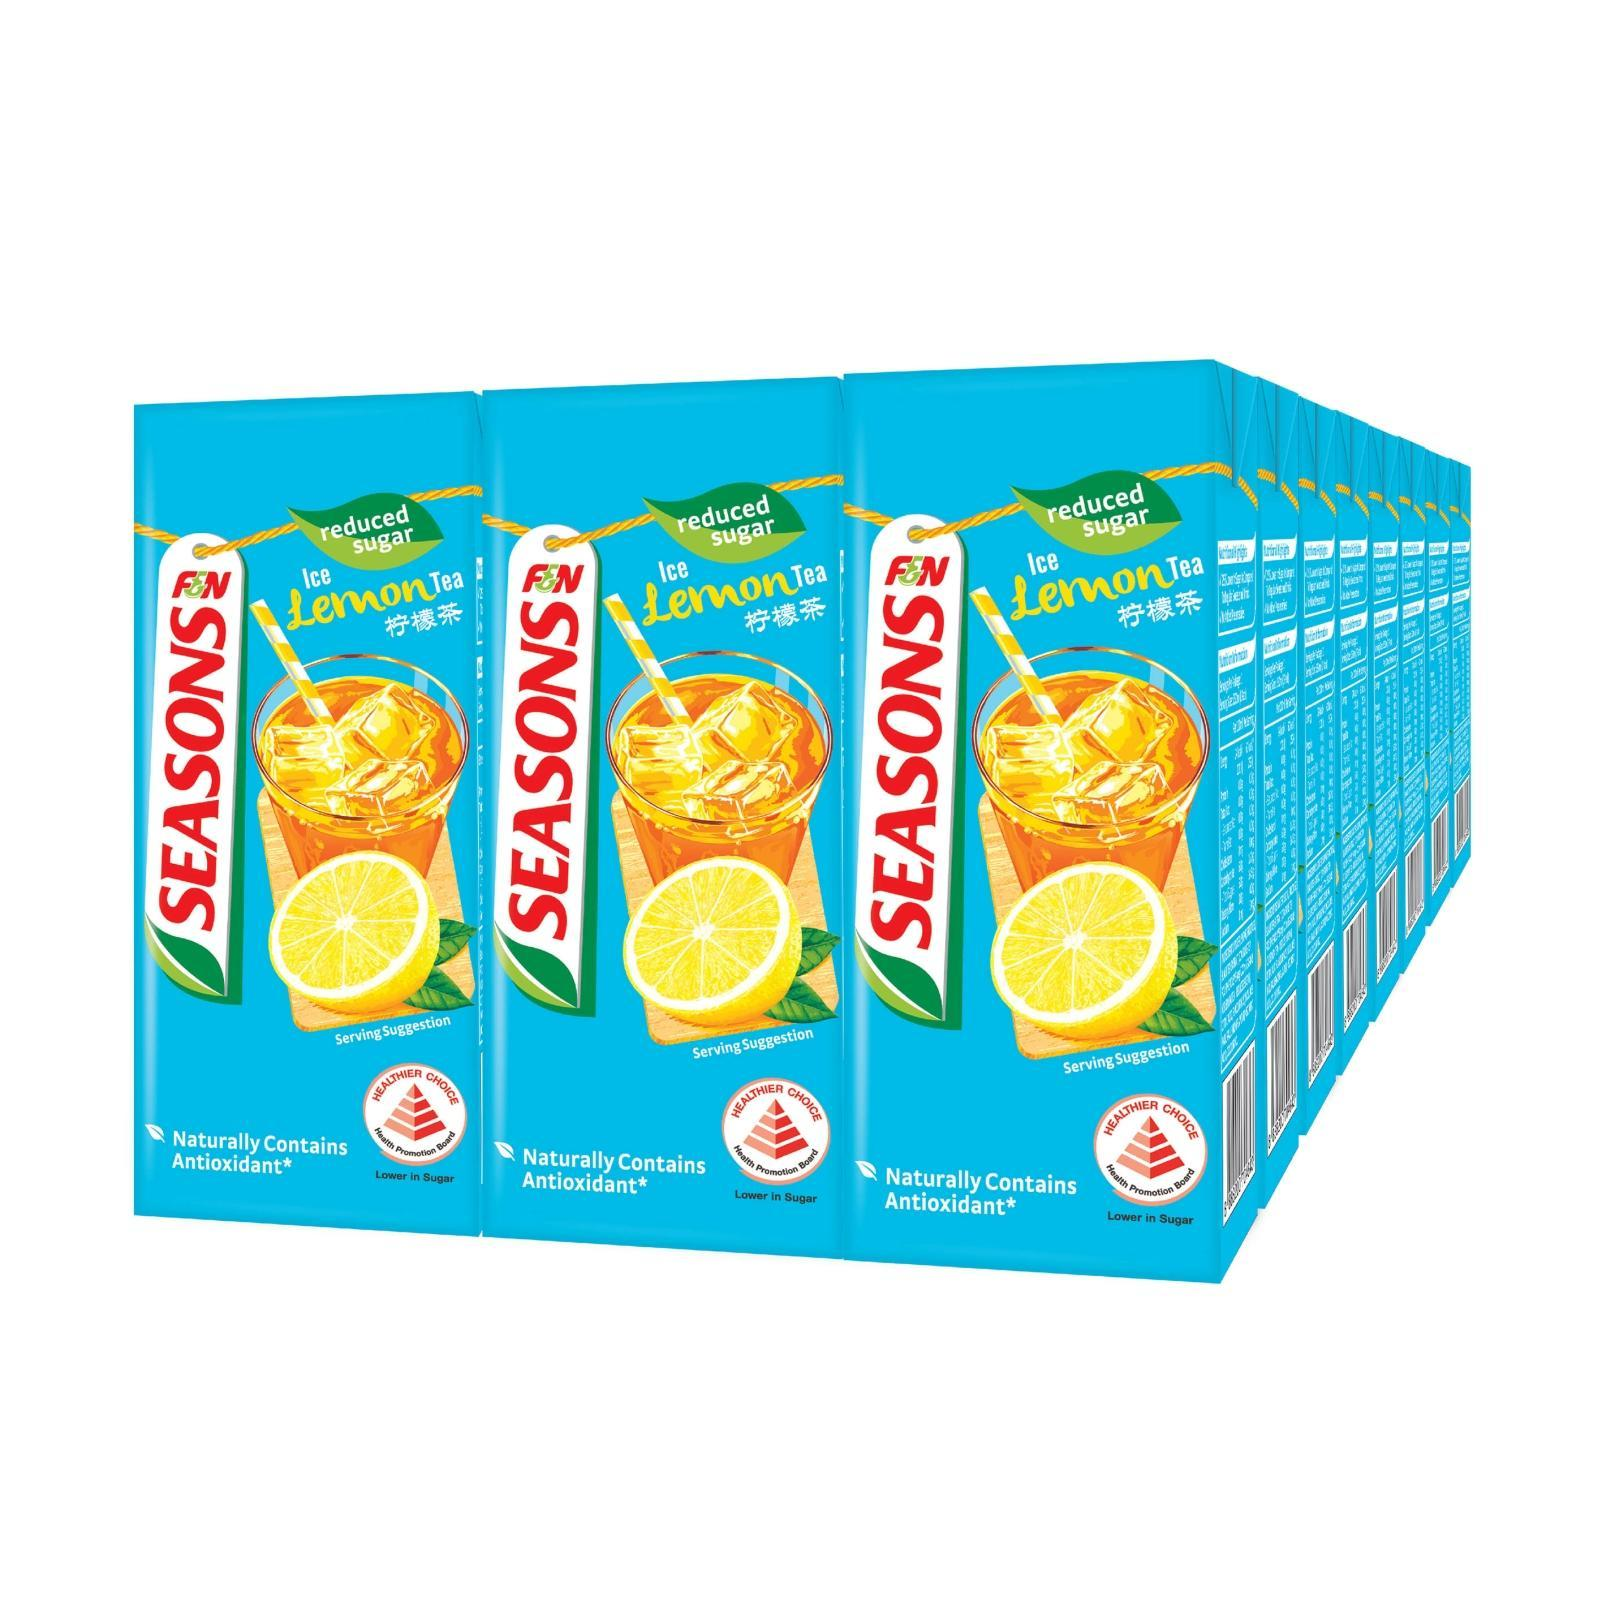 F&N Seasons Ice Lemon Tea Reduced Sugar - Case